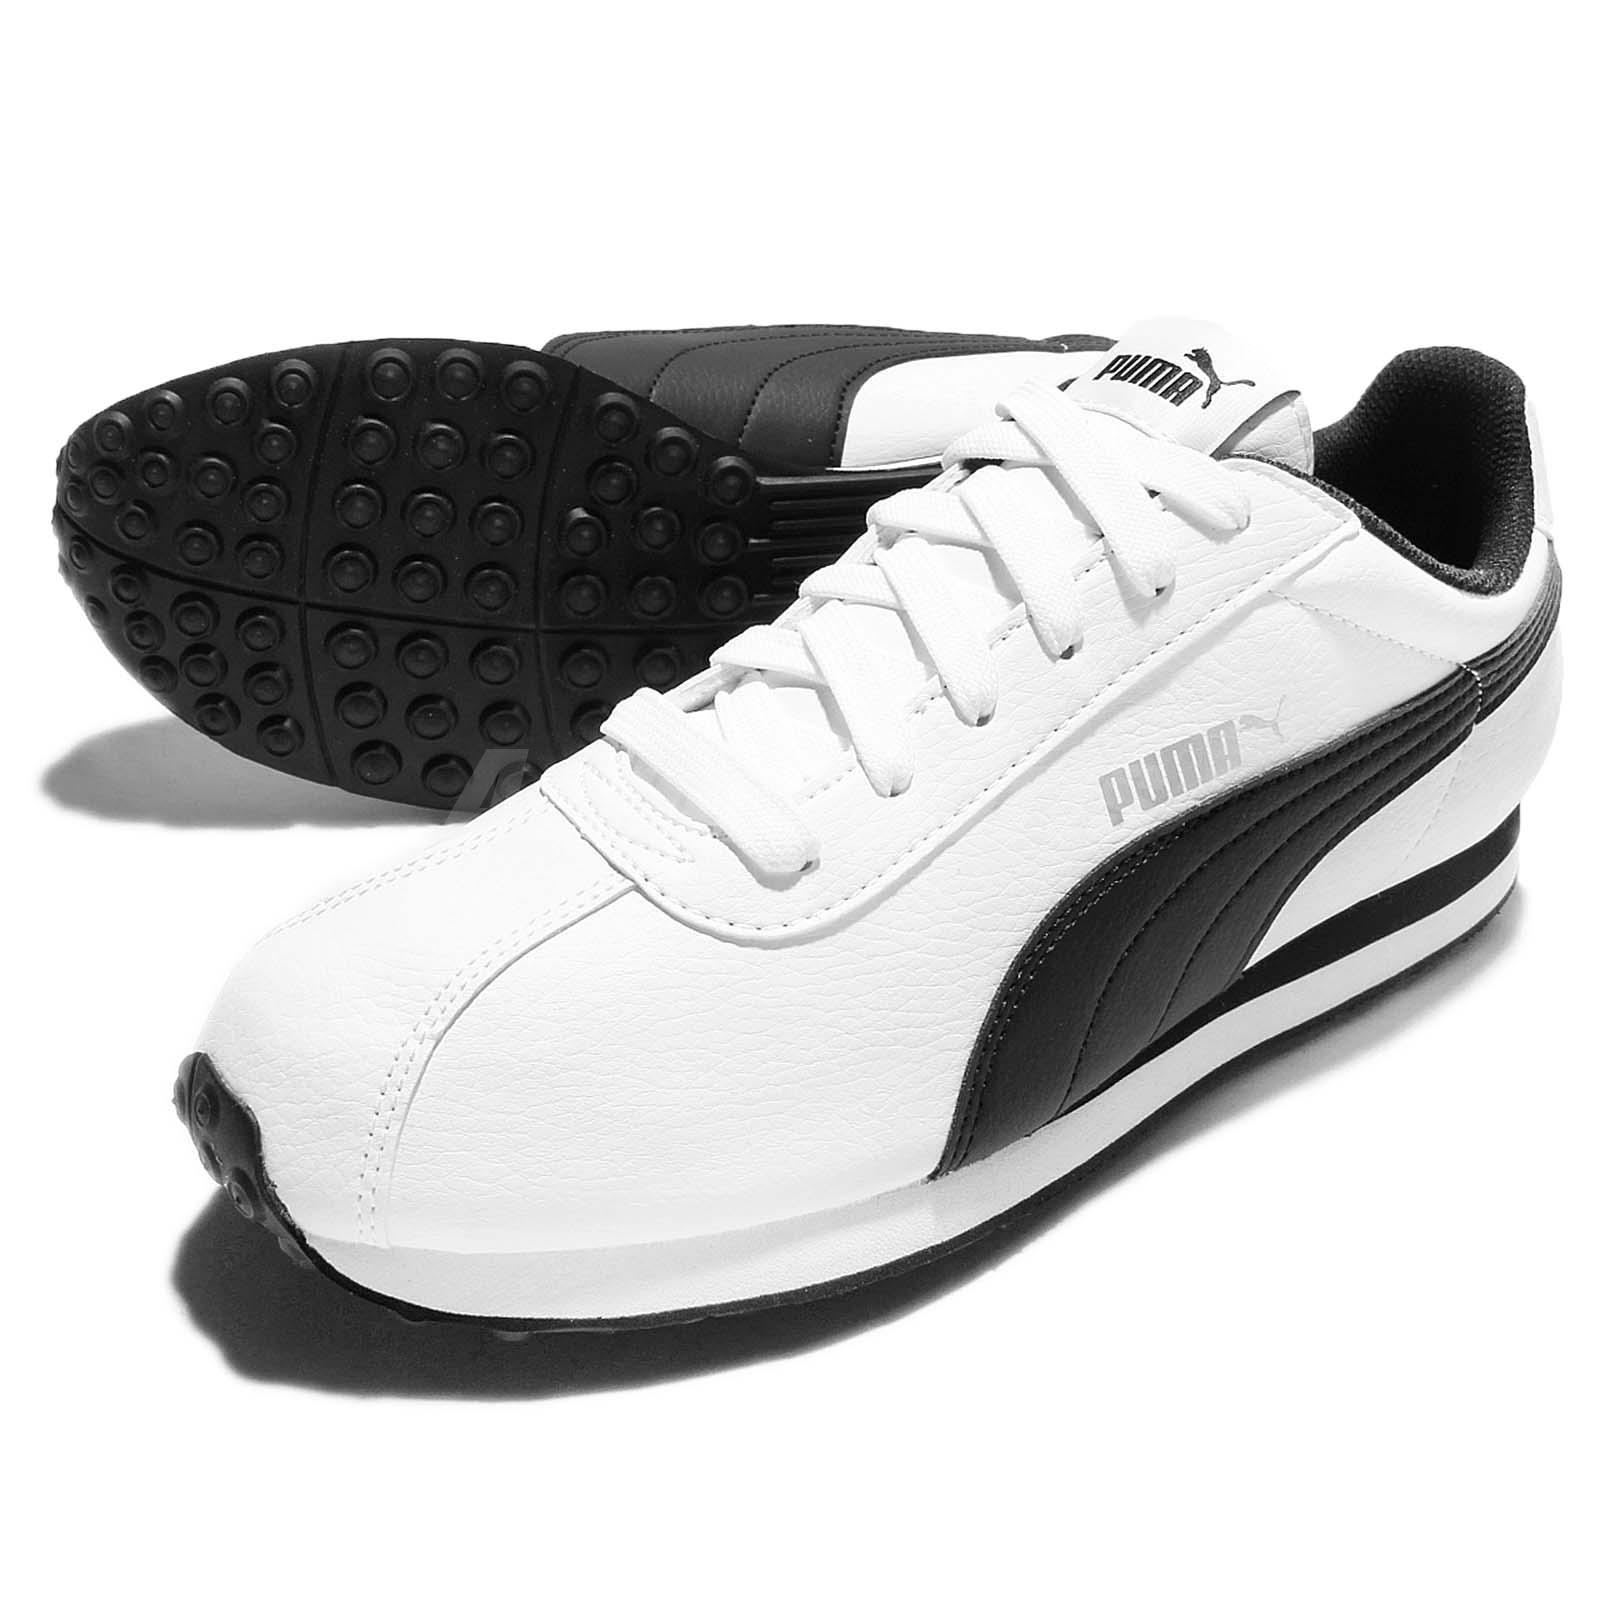 Puma Turin Leather White Black Mens Vintage Casual Shoes ...